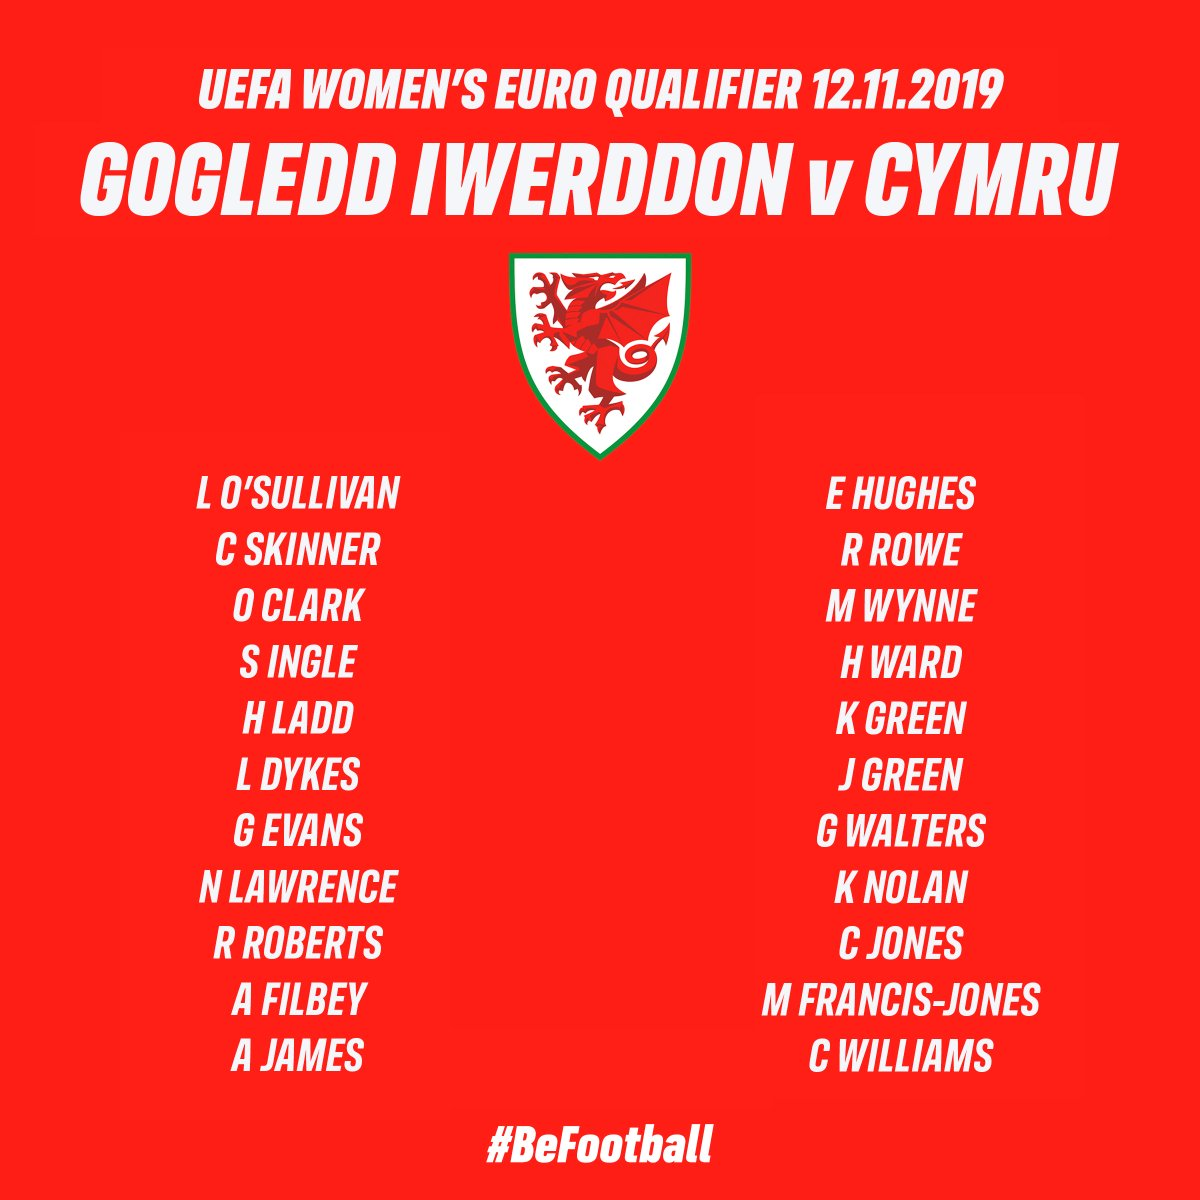 🏴󠁧󠁢󠁷󠁬󠁳󠁿 CYHOEDDI CARFAN 🏴󠁧󠁢󠁷󠁬󠁳󠁿 The 22 players selected for next months squad to face Northern Ireland... Dymar garfan bydd yn cynrychioli Cymru allan yn Belfast... #BeFootball #TogetherStronger